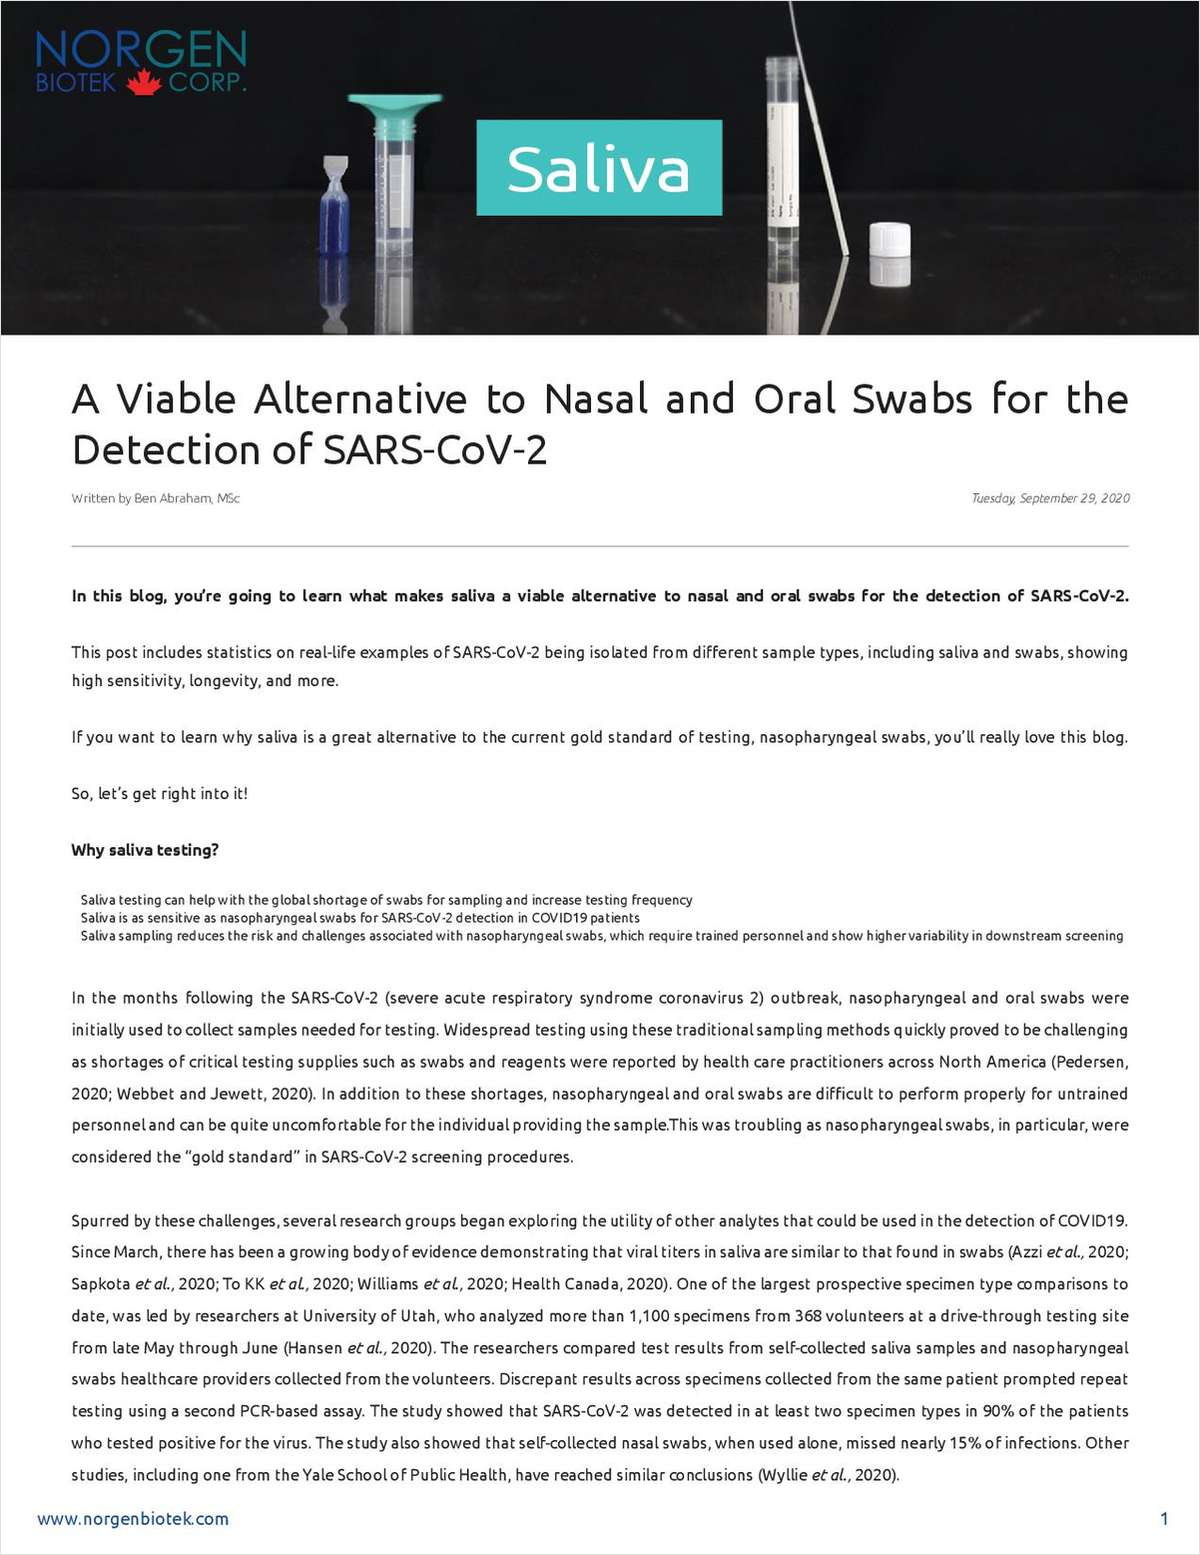 Saliva: A Viable Alternative to Nasal and Oral Swabs for the Detection of SARS-CoV-2